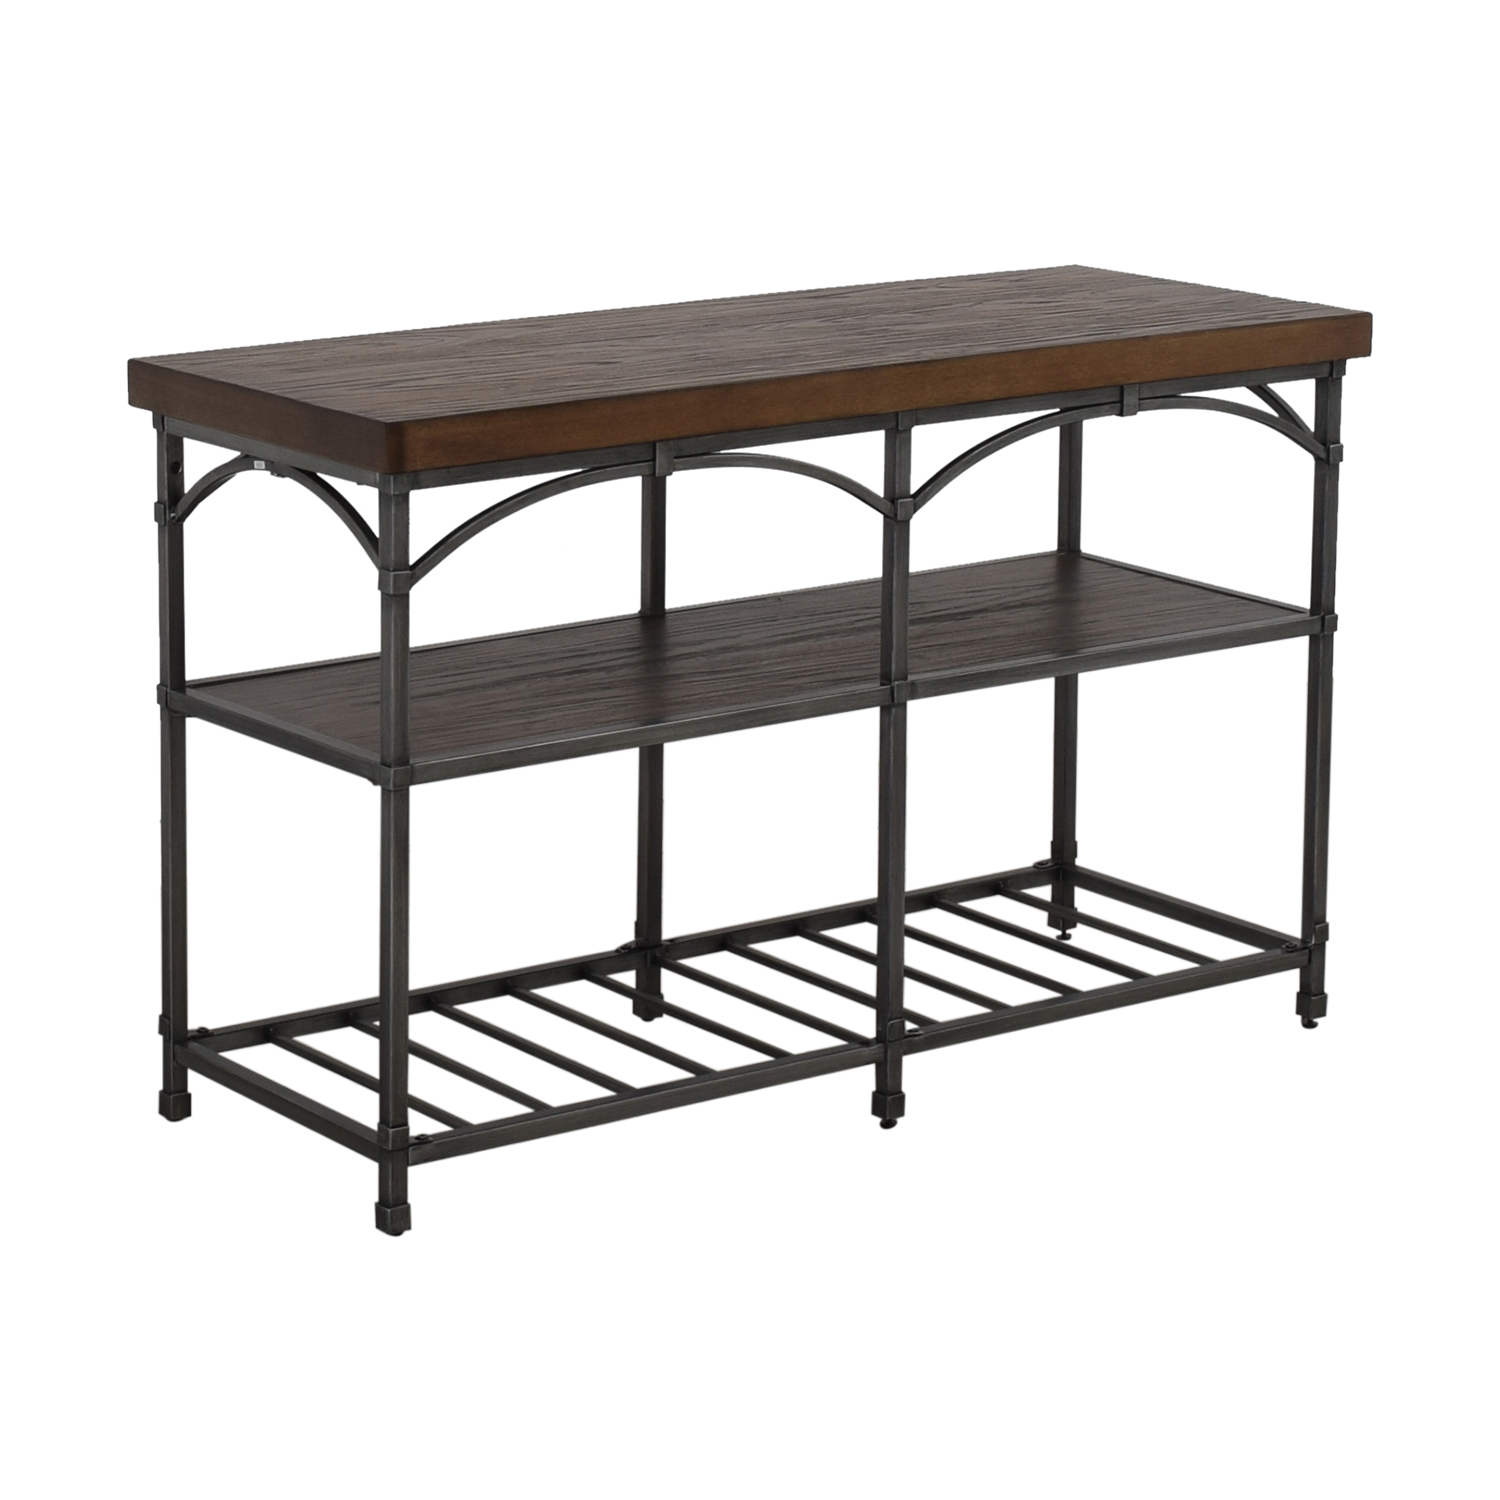 Trent Austin Design Trent Austin Franklin Console Table on sale